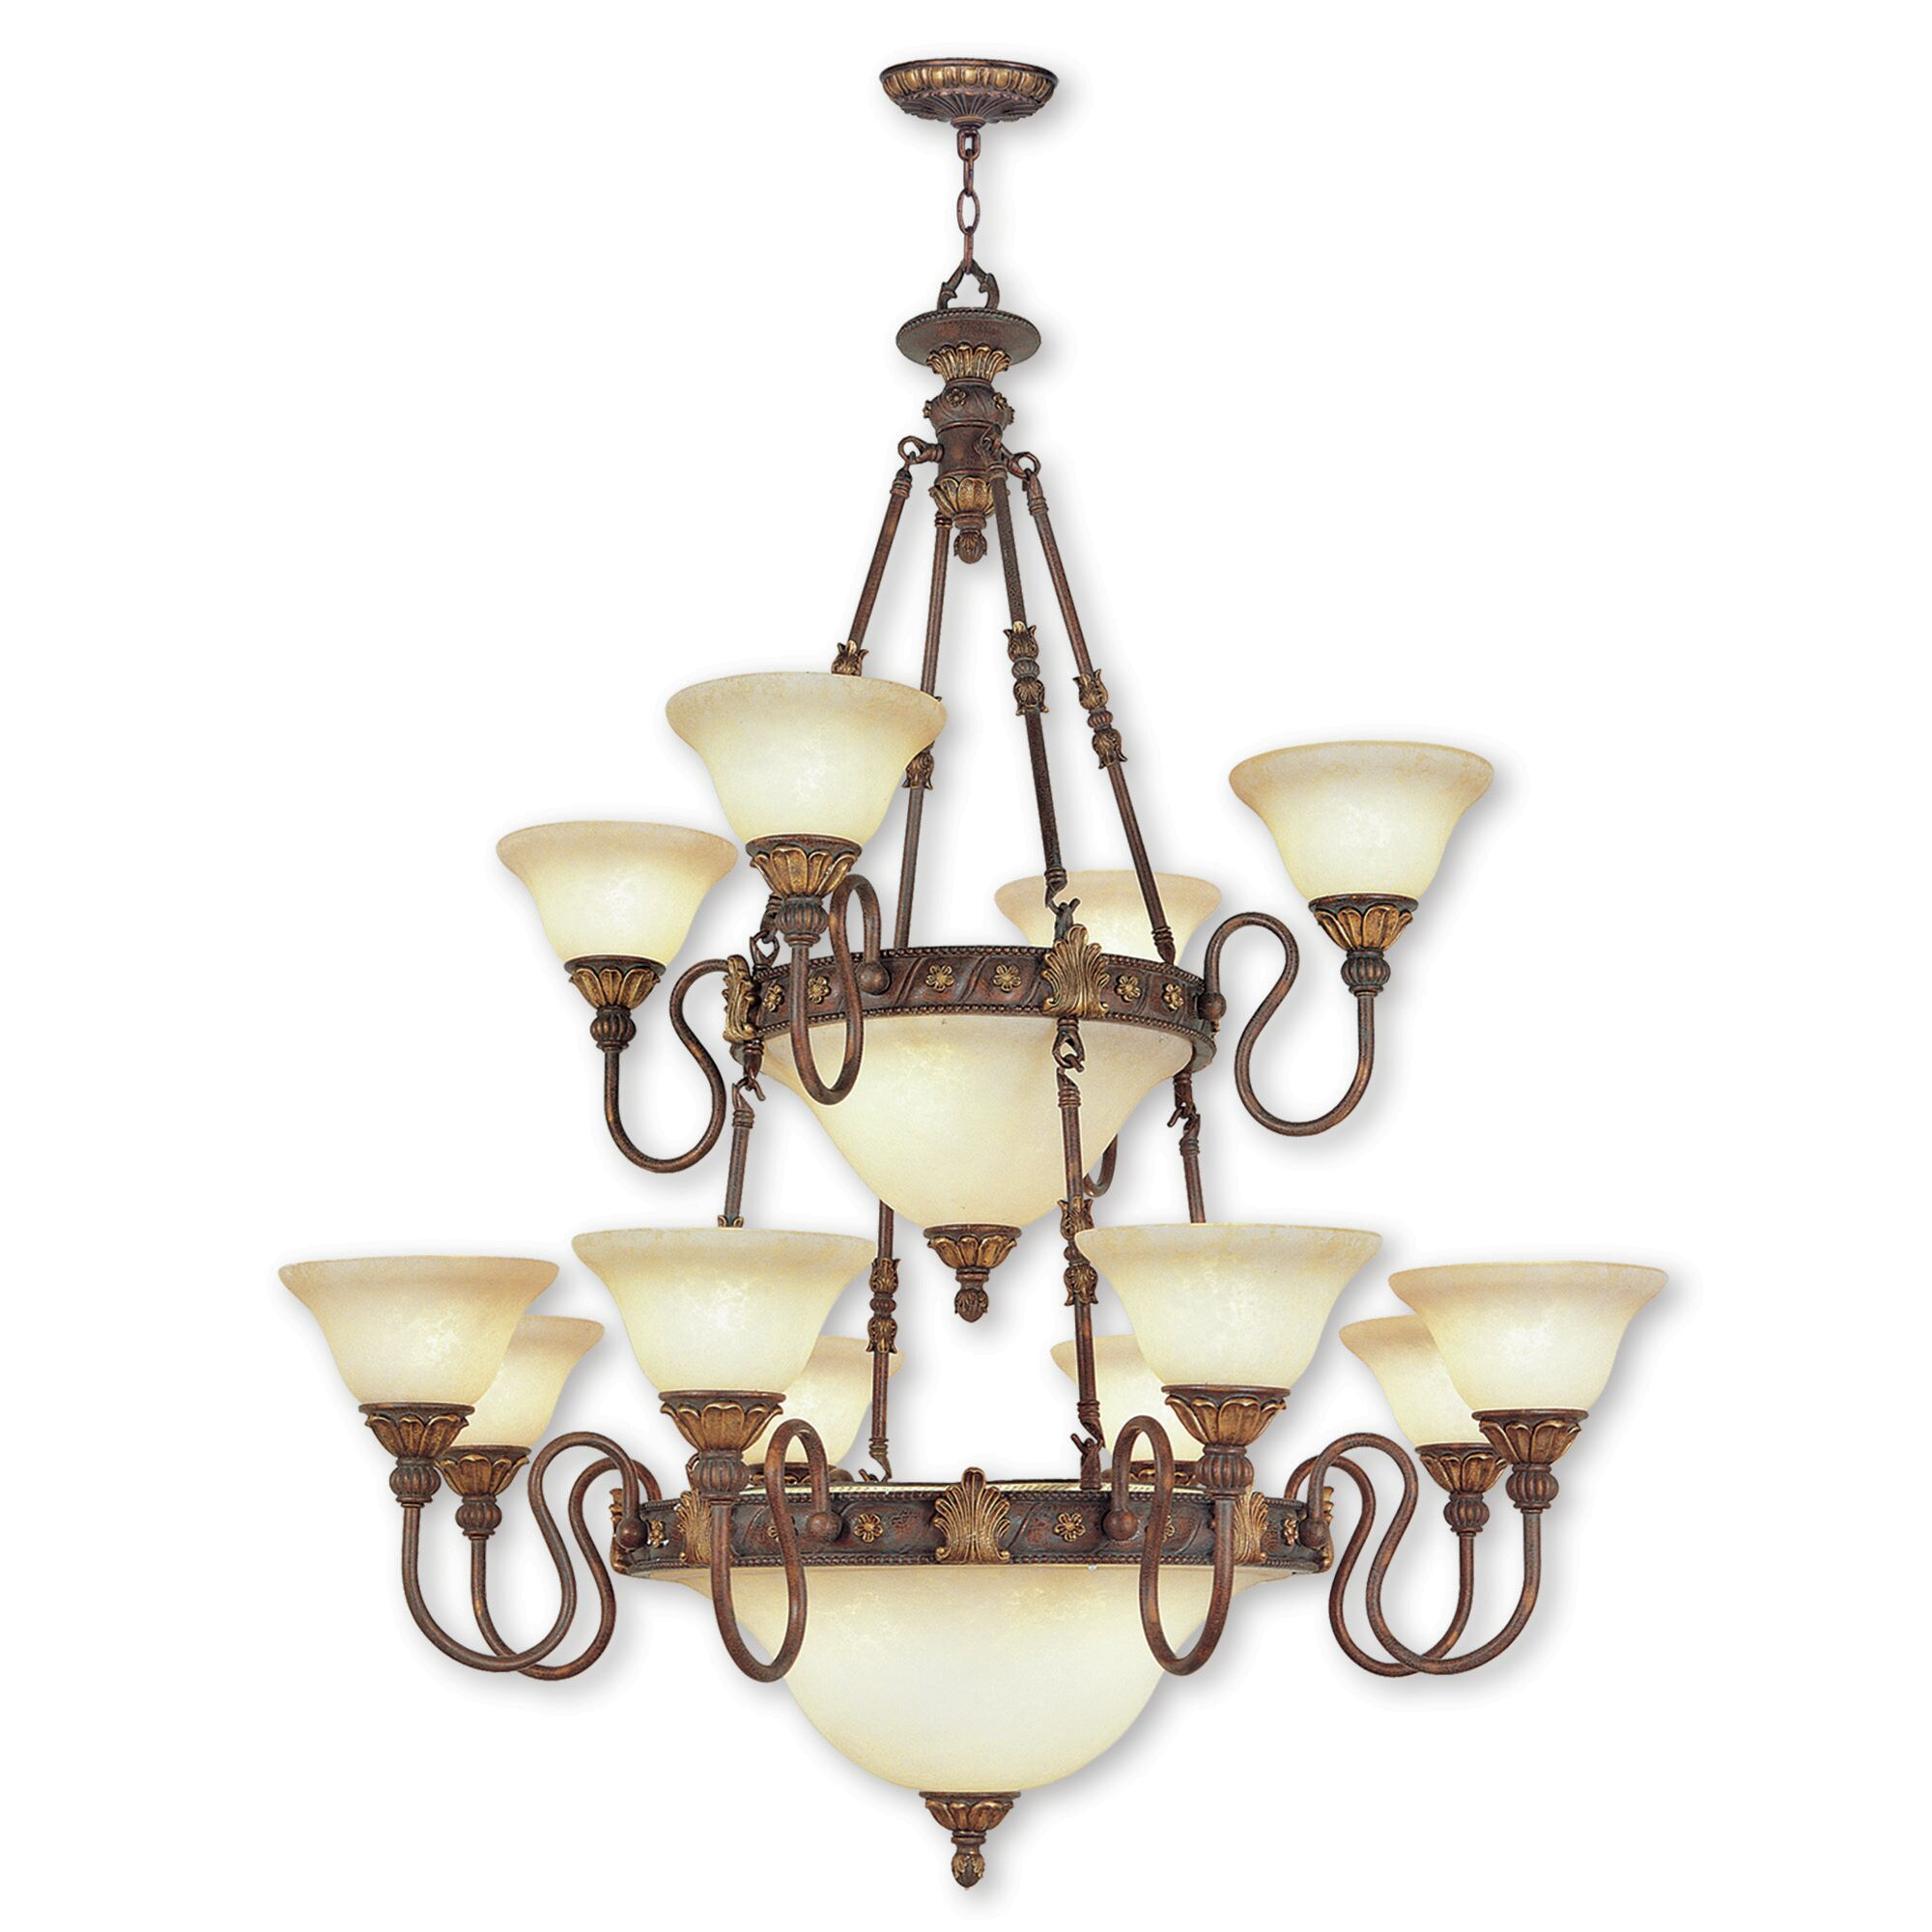 Artlone 18-Light Shaded Chandelier